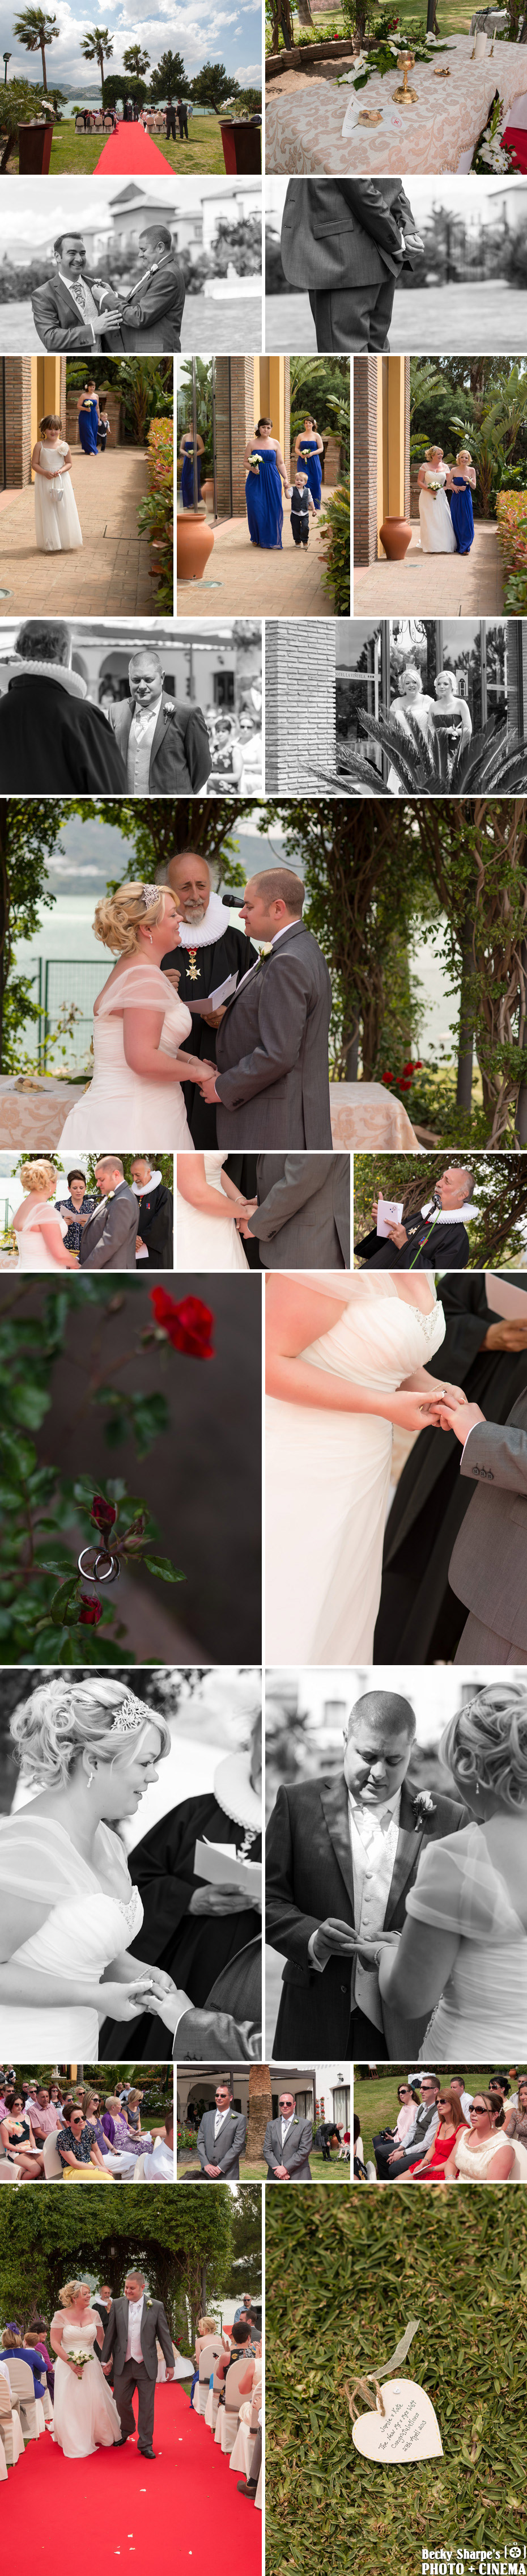 wedding-ceremony-velez-malaga-photographs